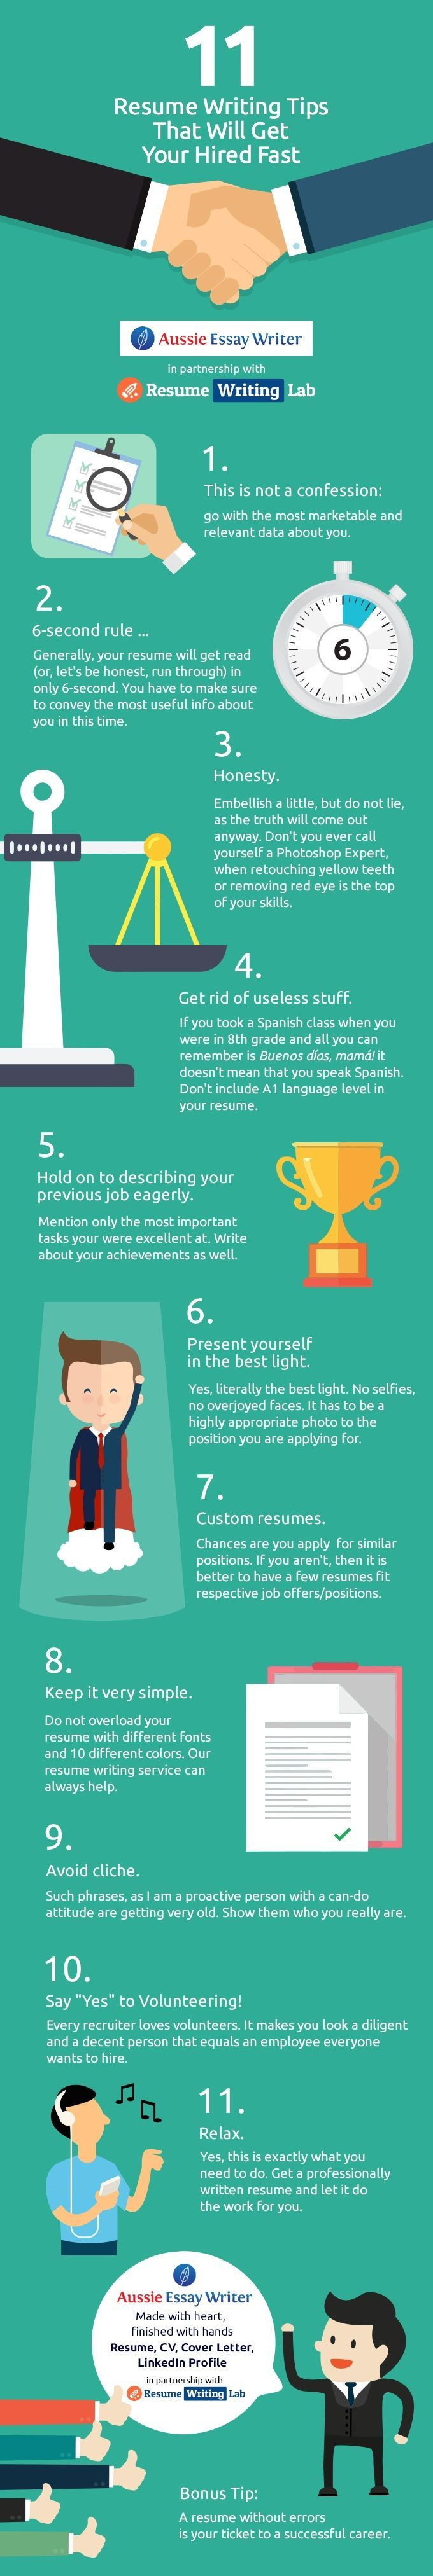 11 Resume Writing Tips That Will Get You Hired Fast Infographic   Http://